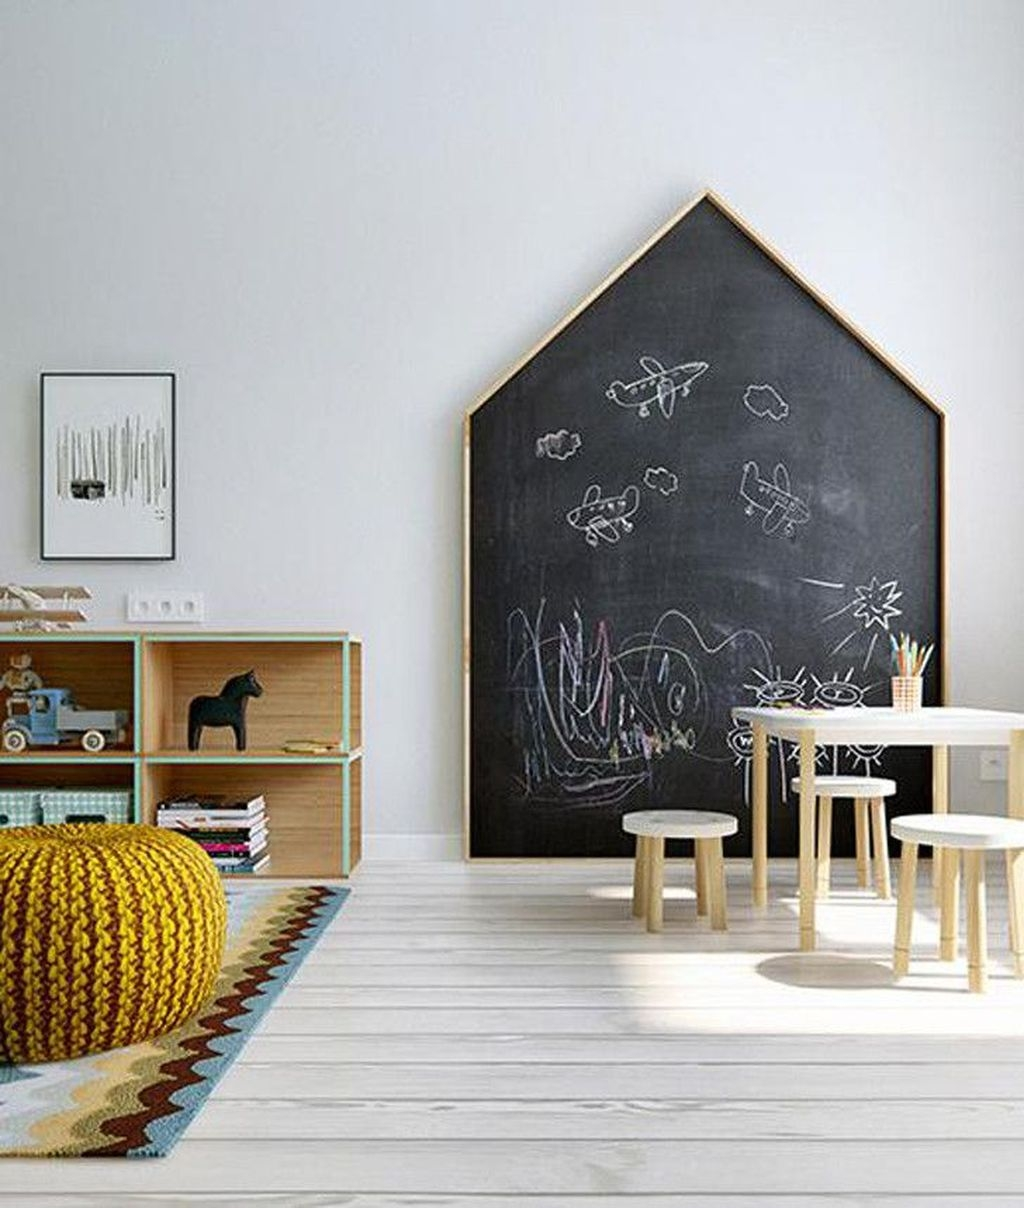 Inspiring Kids Room Design Ideas 03